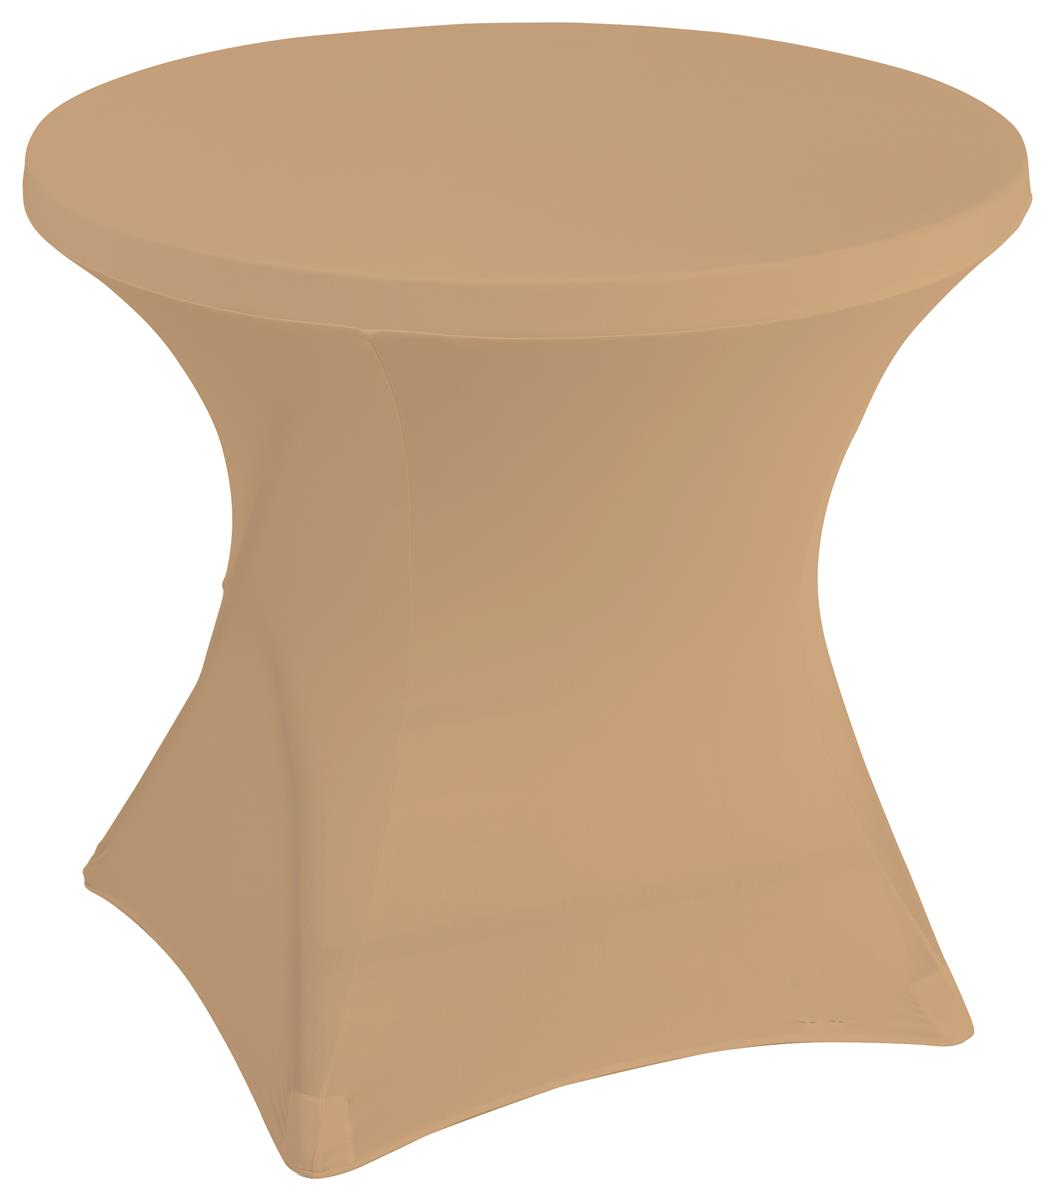 Stretch polyester tablecloths with overall diameter of 31 inches